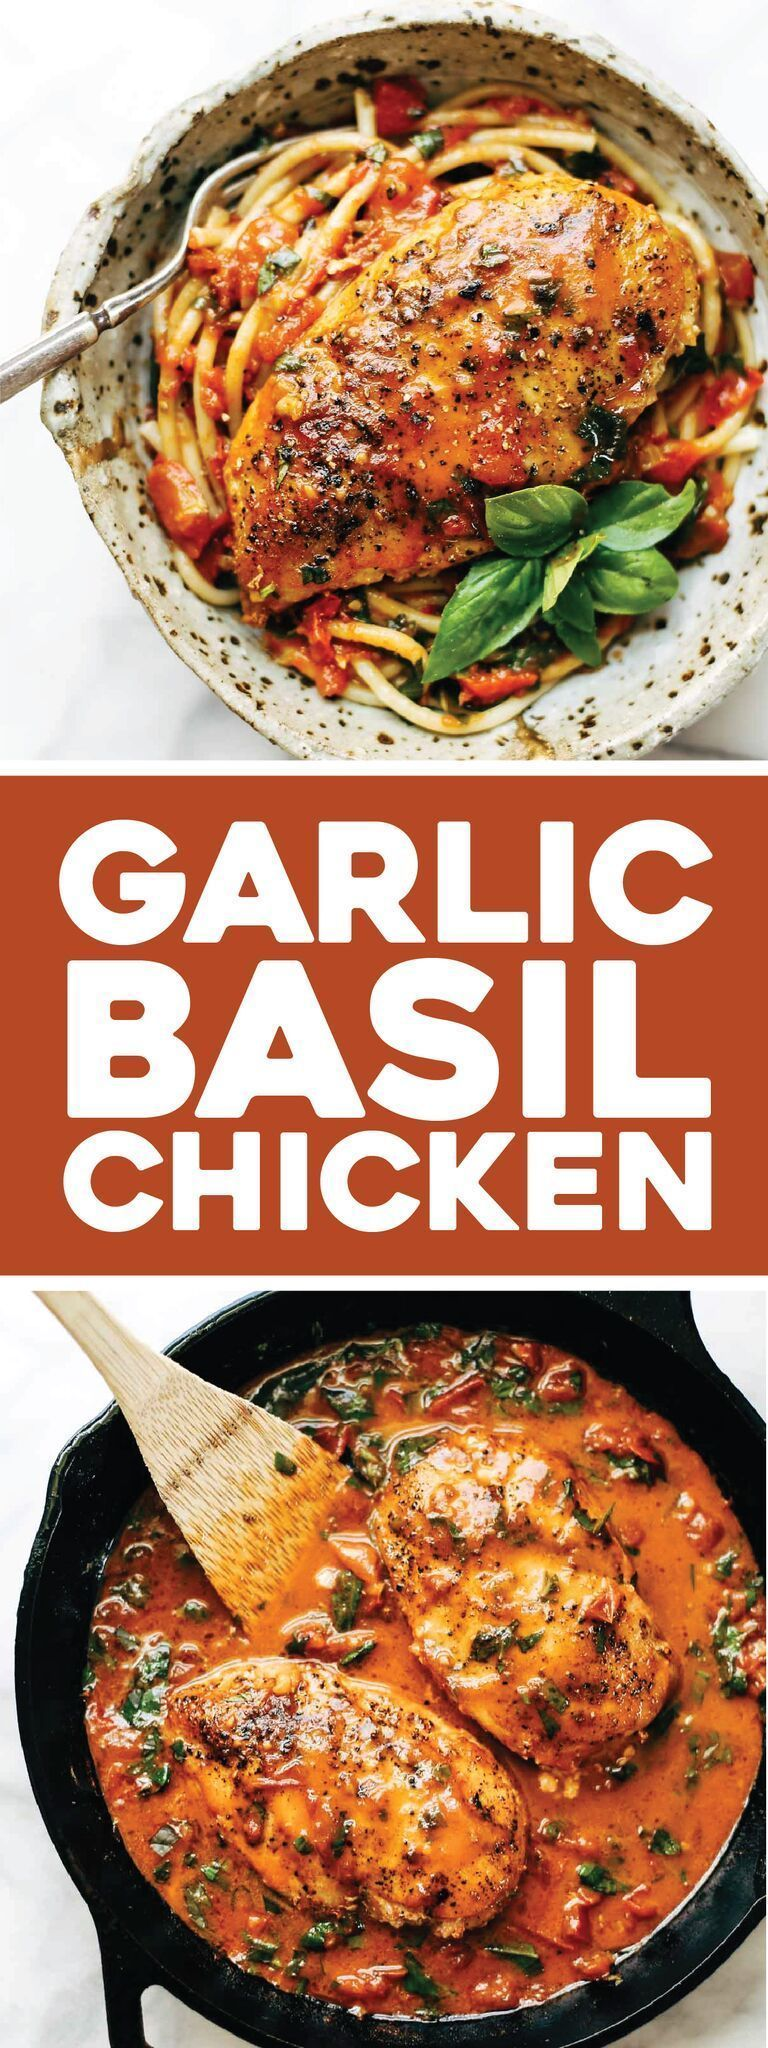 Chicken with Tomato Butter Sauce Garlic Basil Chicken - you won't believe that this easy real food recipe only requires 7 ingredients like basil, garlic, olive oil, tomatoes, and butter. | Garlic Basil Chicken - you won't believe that this easy real food recipe only requires 7 ingredients like basil, garlic, olive oil, tomatoes, and butter. |